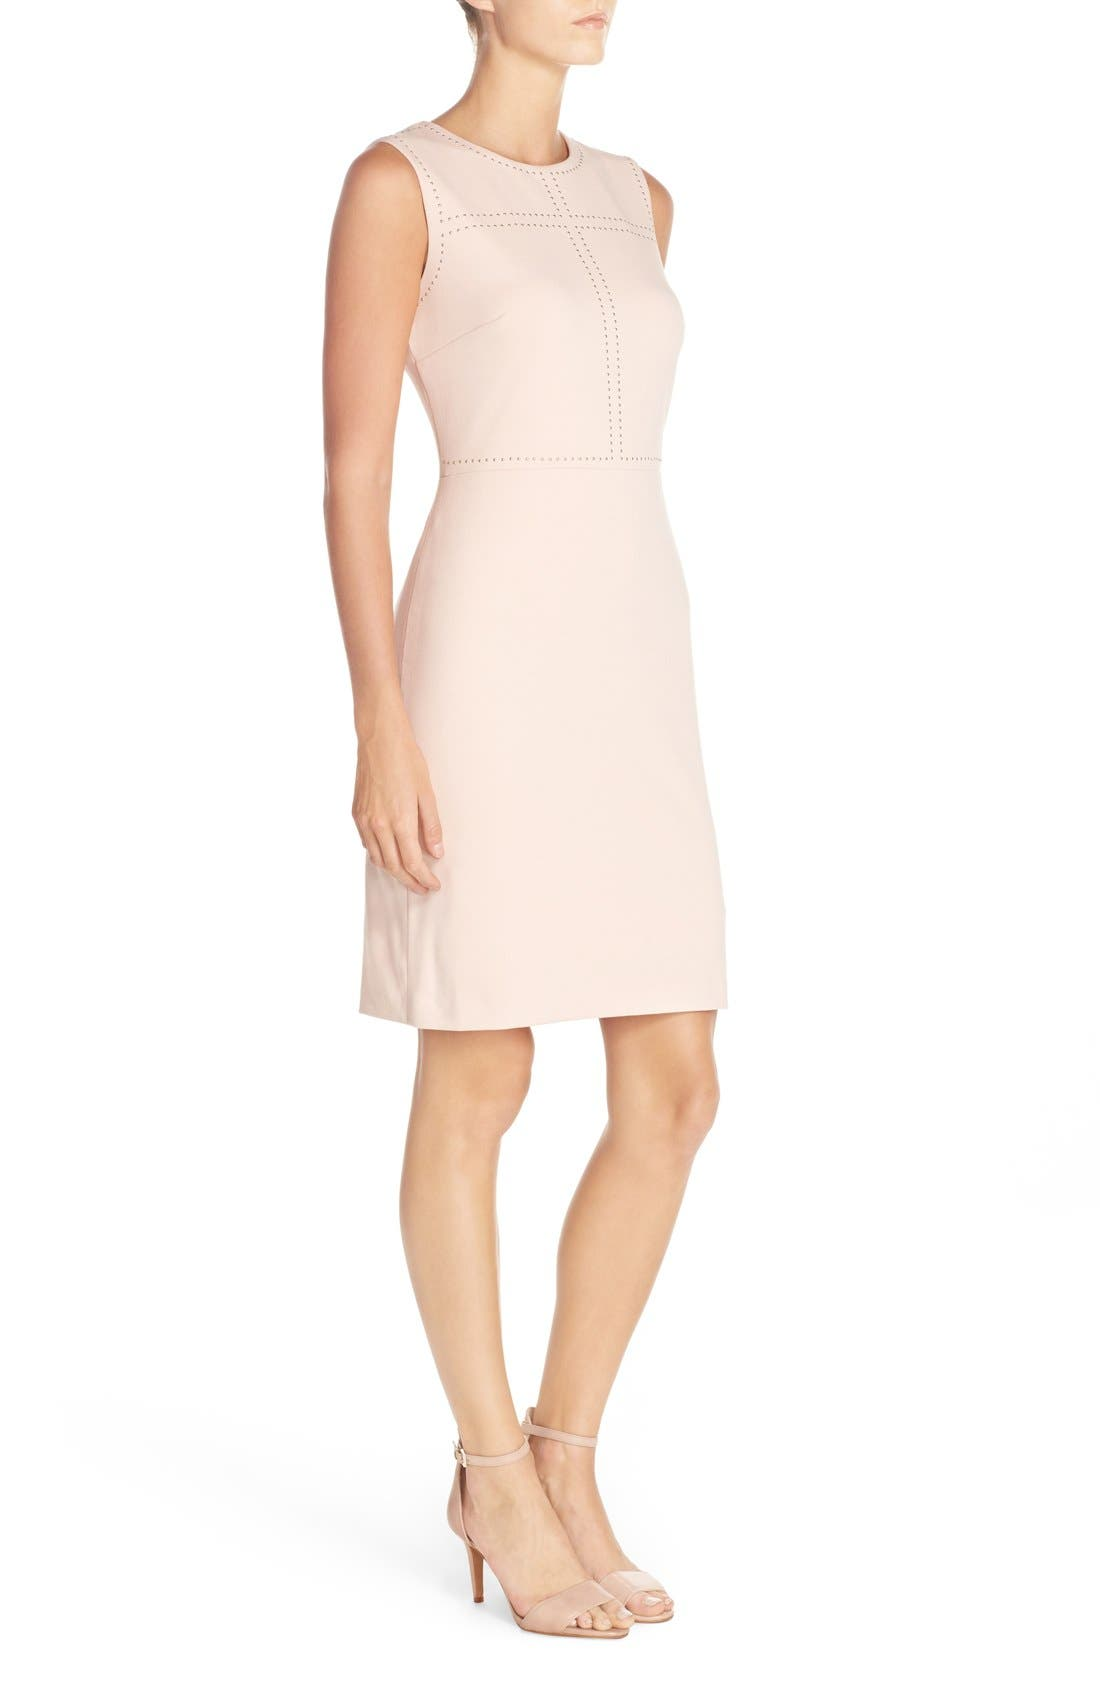 IVANKA TRUMP, Sleeveless Sheath Dress, Alternate thumbnail 5, color, 650